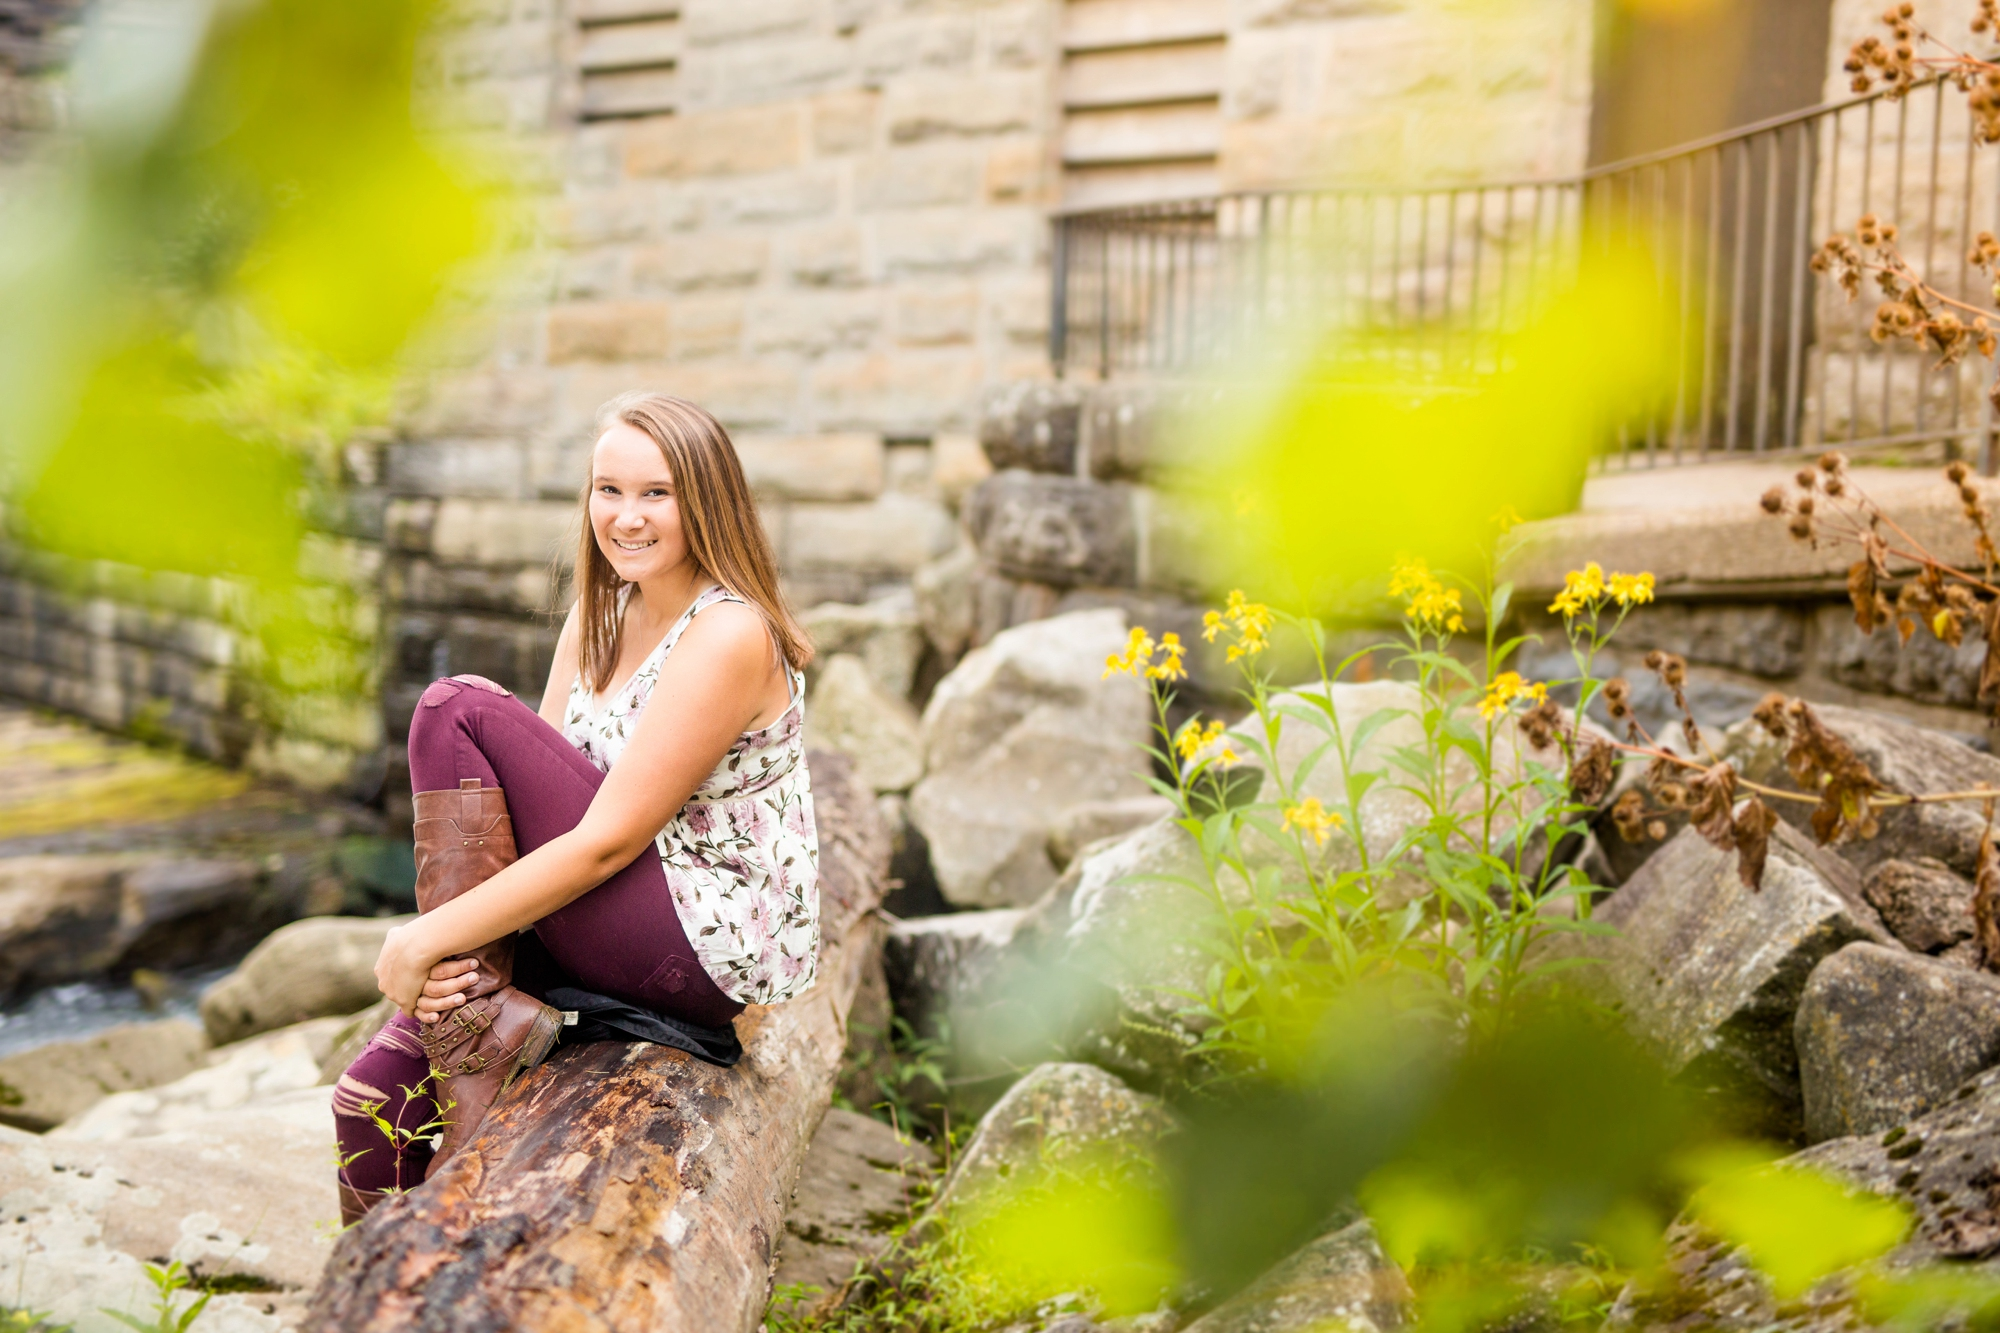 best places to take senior pictures in pittsburgh, places to take senior pictures in pittsburgh, mcconnells mill senior photos, pittsburgh senior photographer